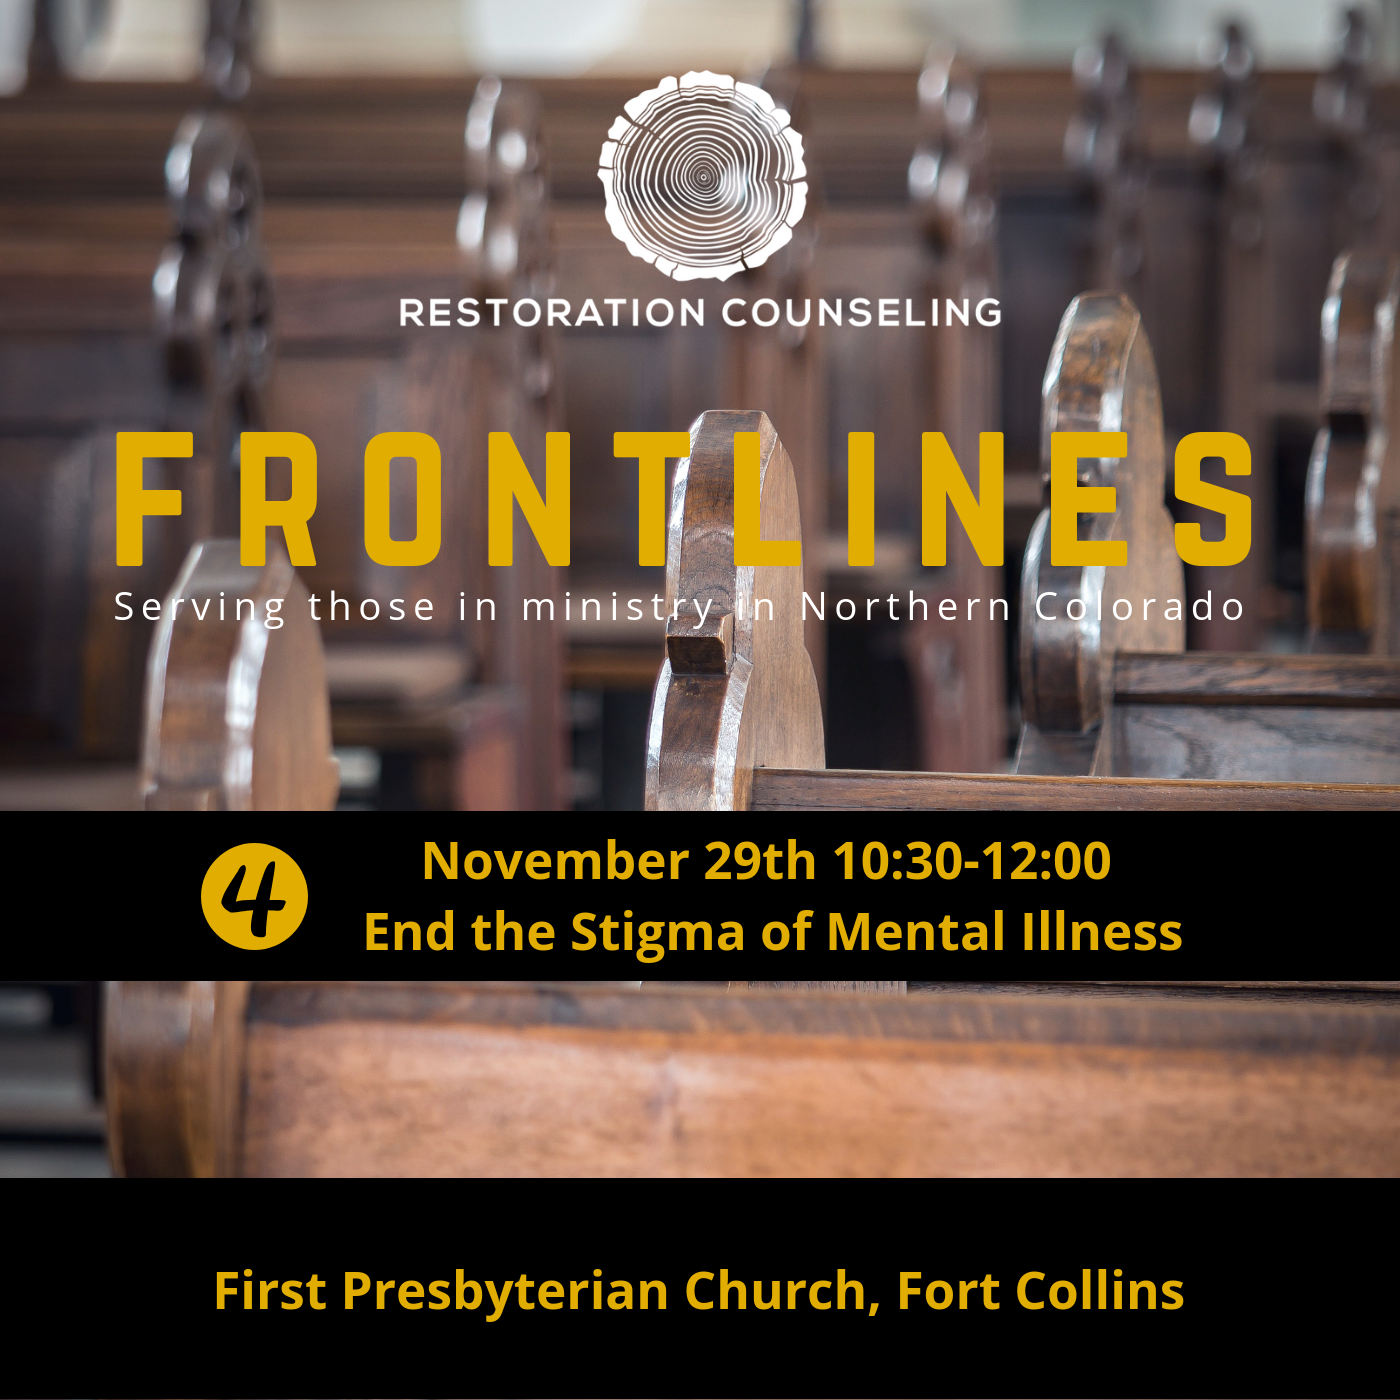 Serving Northern Colorado by supporting Church and Ministry Leaders - 4th in our Fall 2018 Frontlines series: Mental Illness Stigma in the Church. We are facing an epidemic of mental illness related issues from suicide, mass shootings, to broken relationships. And yet, how are we as ministry leaders handling this reality among those we serve? Join us at 10:30am on November 29th at First Presbyterian Church, Fort Collins.